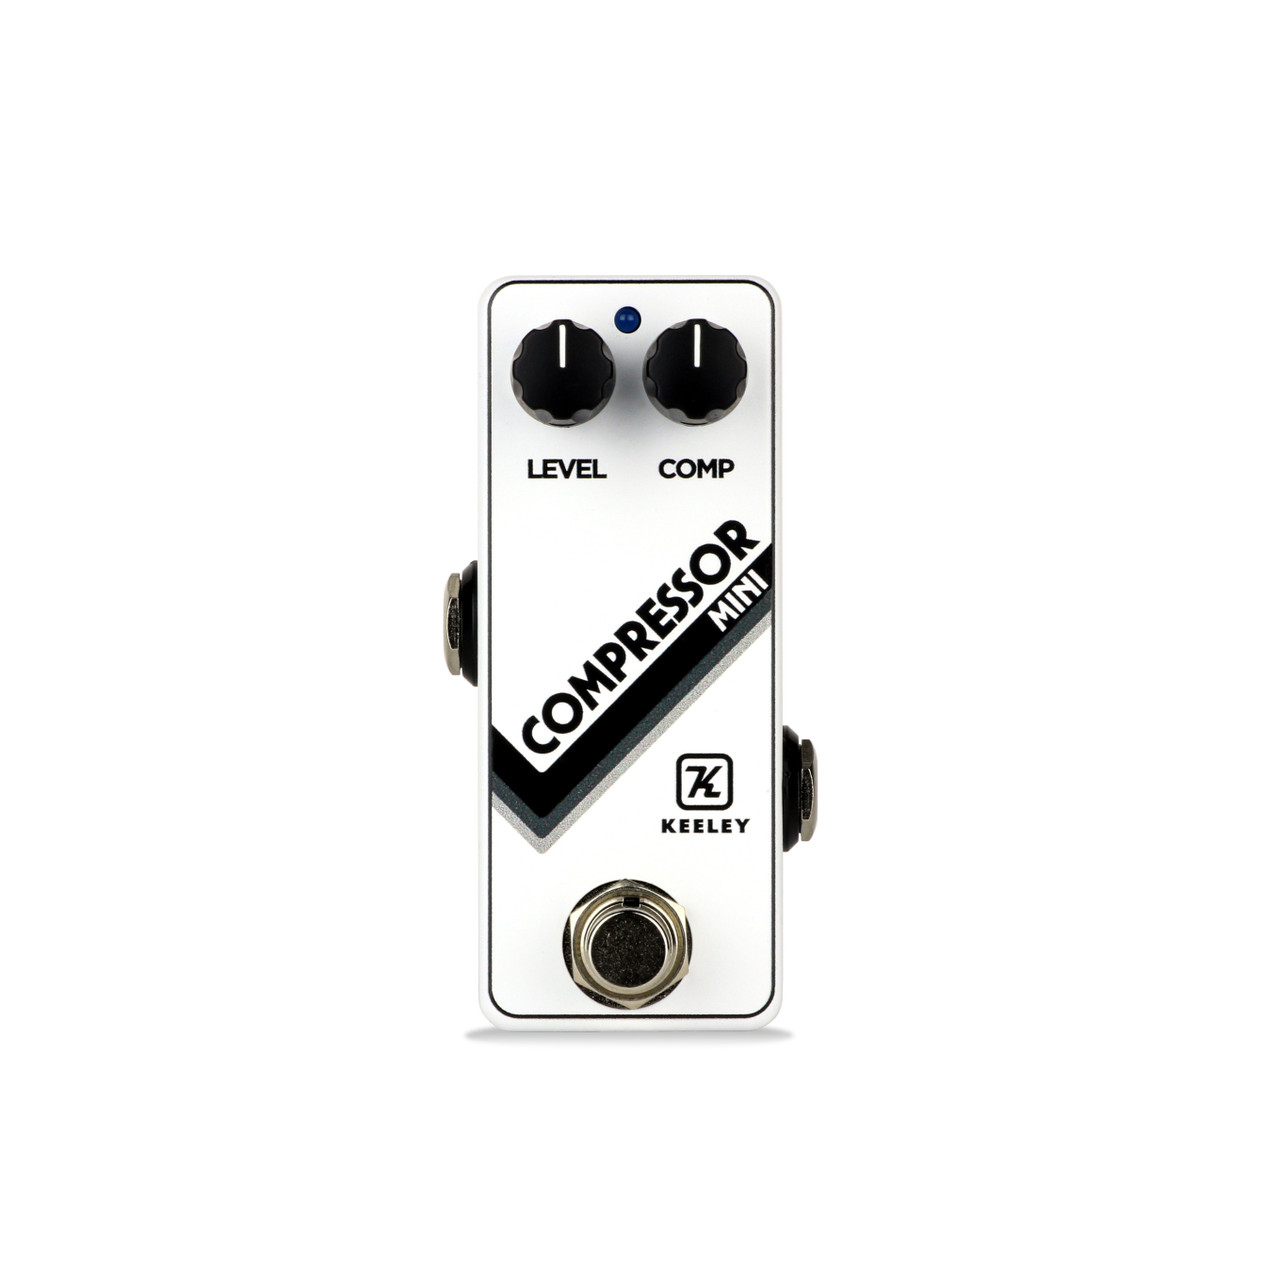 Keeley Compressor Mini Pedal - Limited Edition Artic White